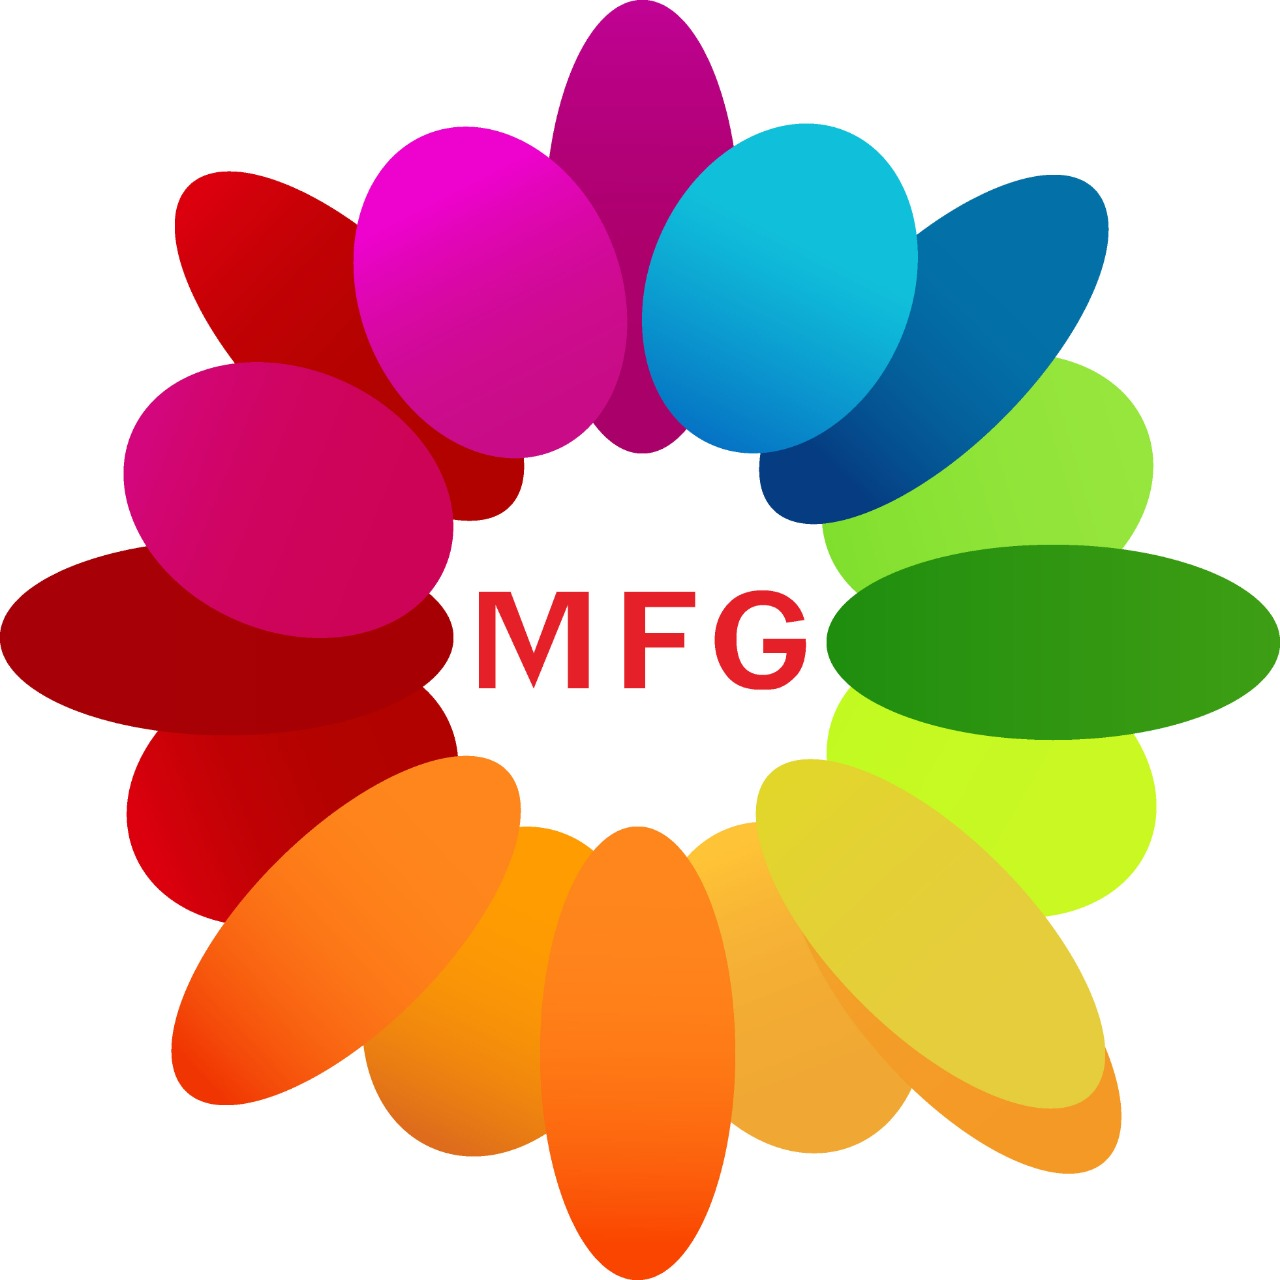 A grand bouquet of 1000 roses with 3 feet height teddy bear with 20 heart shape balloons with 1 kg chocolate truffle fresh cream cake